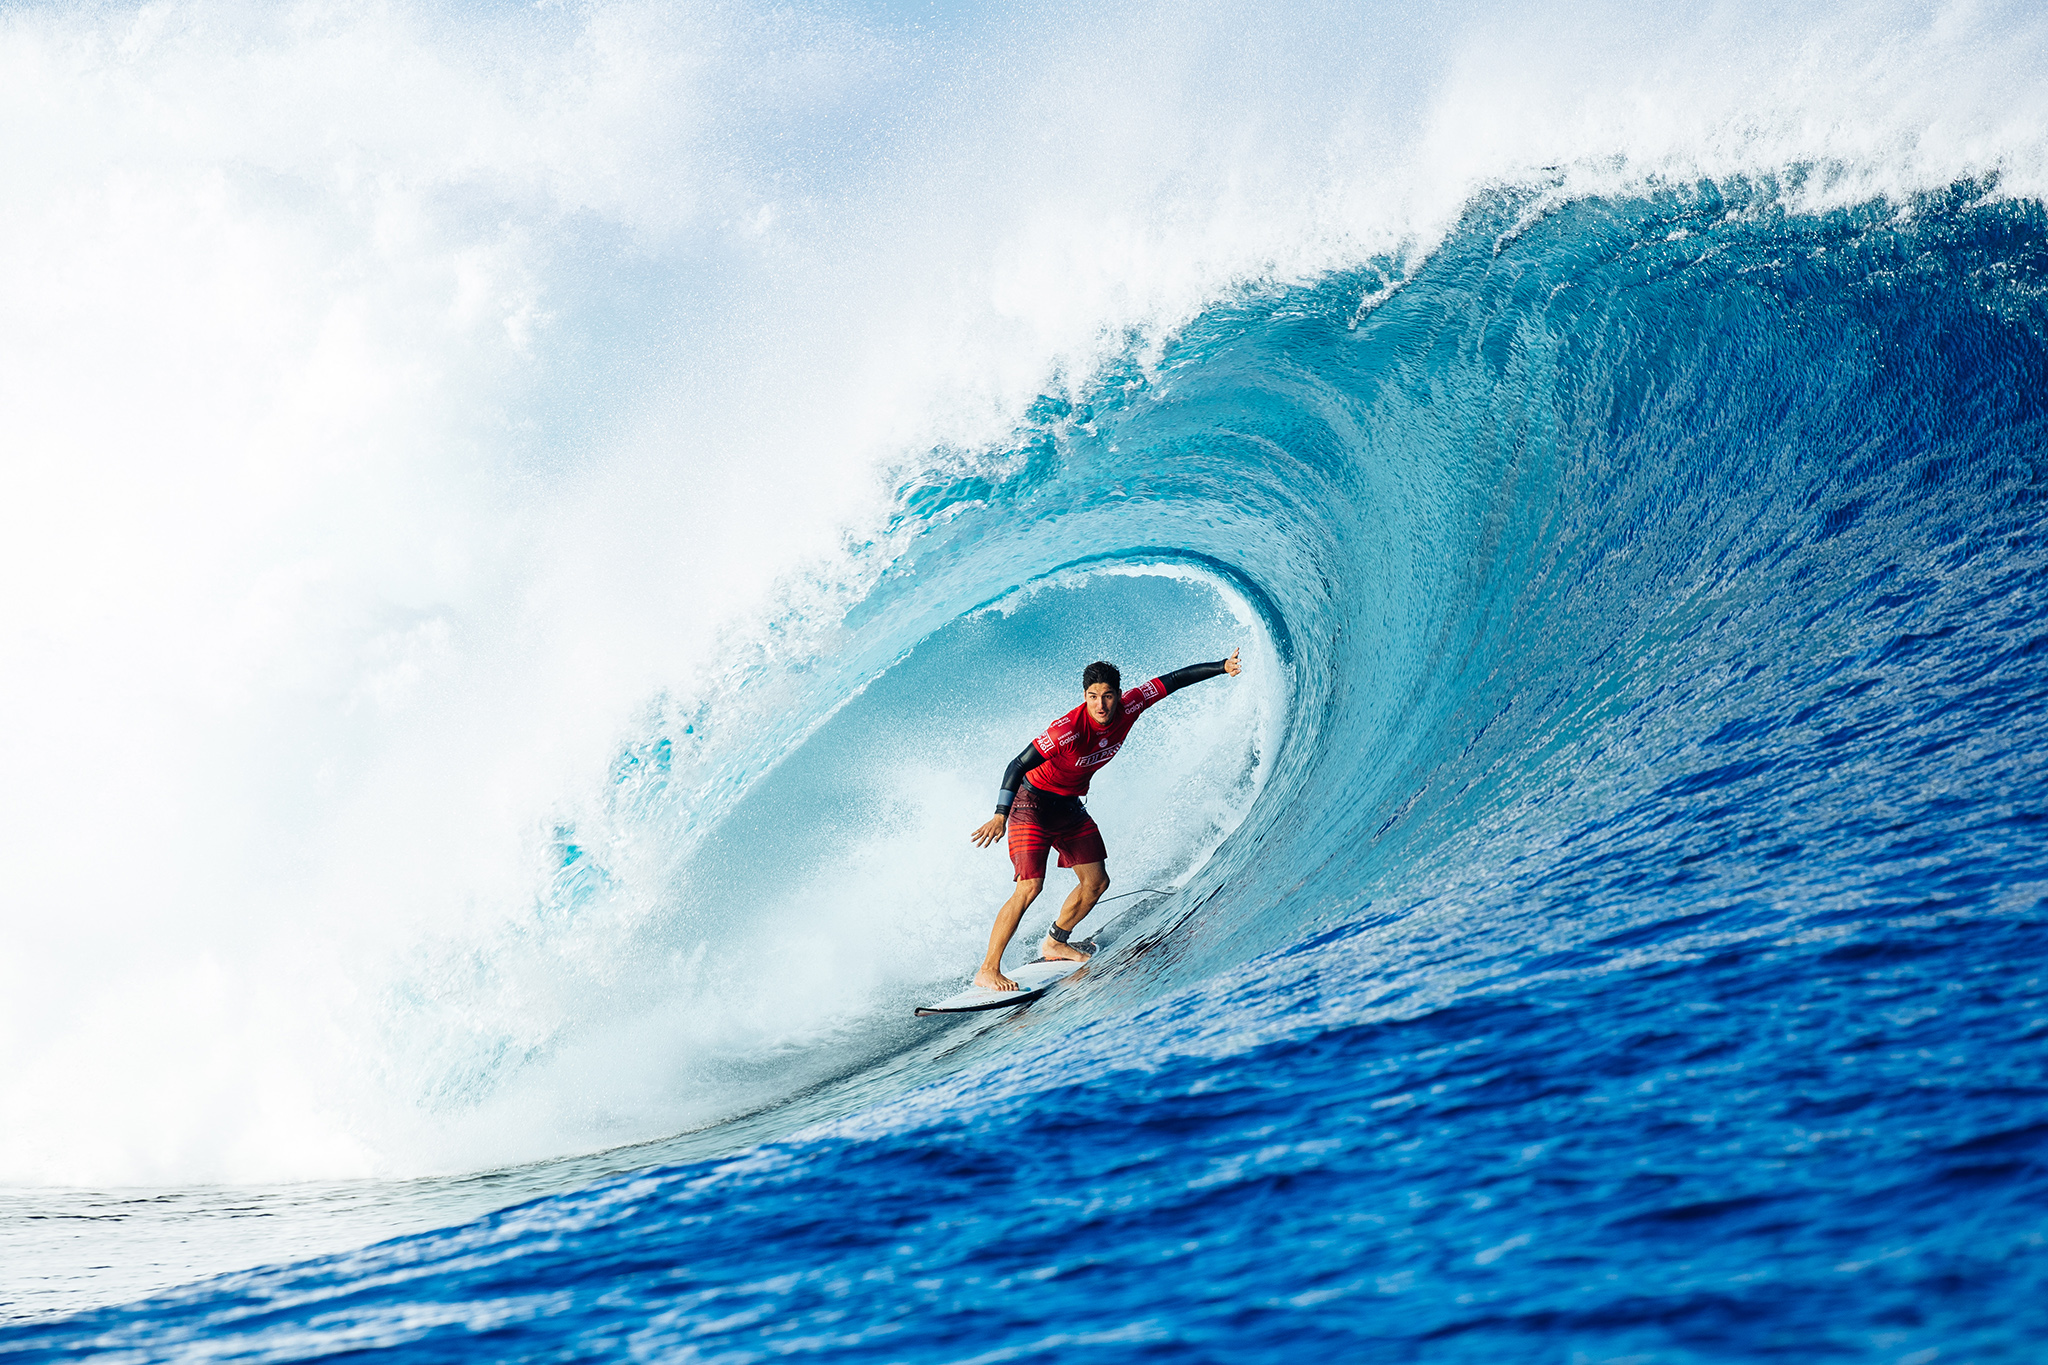 Gabriel Medina of Brasil (pictured) winning his Round Four heat with a Perfect 10-point ride at the Fiji Pro at Cloudbreak on Thursday June 16, 2016. PHOTO: © WSL/ Cestari SOCIAL: @Cestari This image is the copyright of the World Surf League and is provided royalty free for editorial use only, in aall media now known or hereafter created. No commercial rights granted. Sale or license of the images is prohibited. This image is a factually accurate rendering of what it depicts and has not been modified or augmented except for standard cropping and toning. ALL RIGHTS RESERVED.